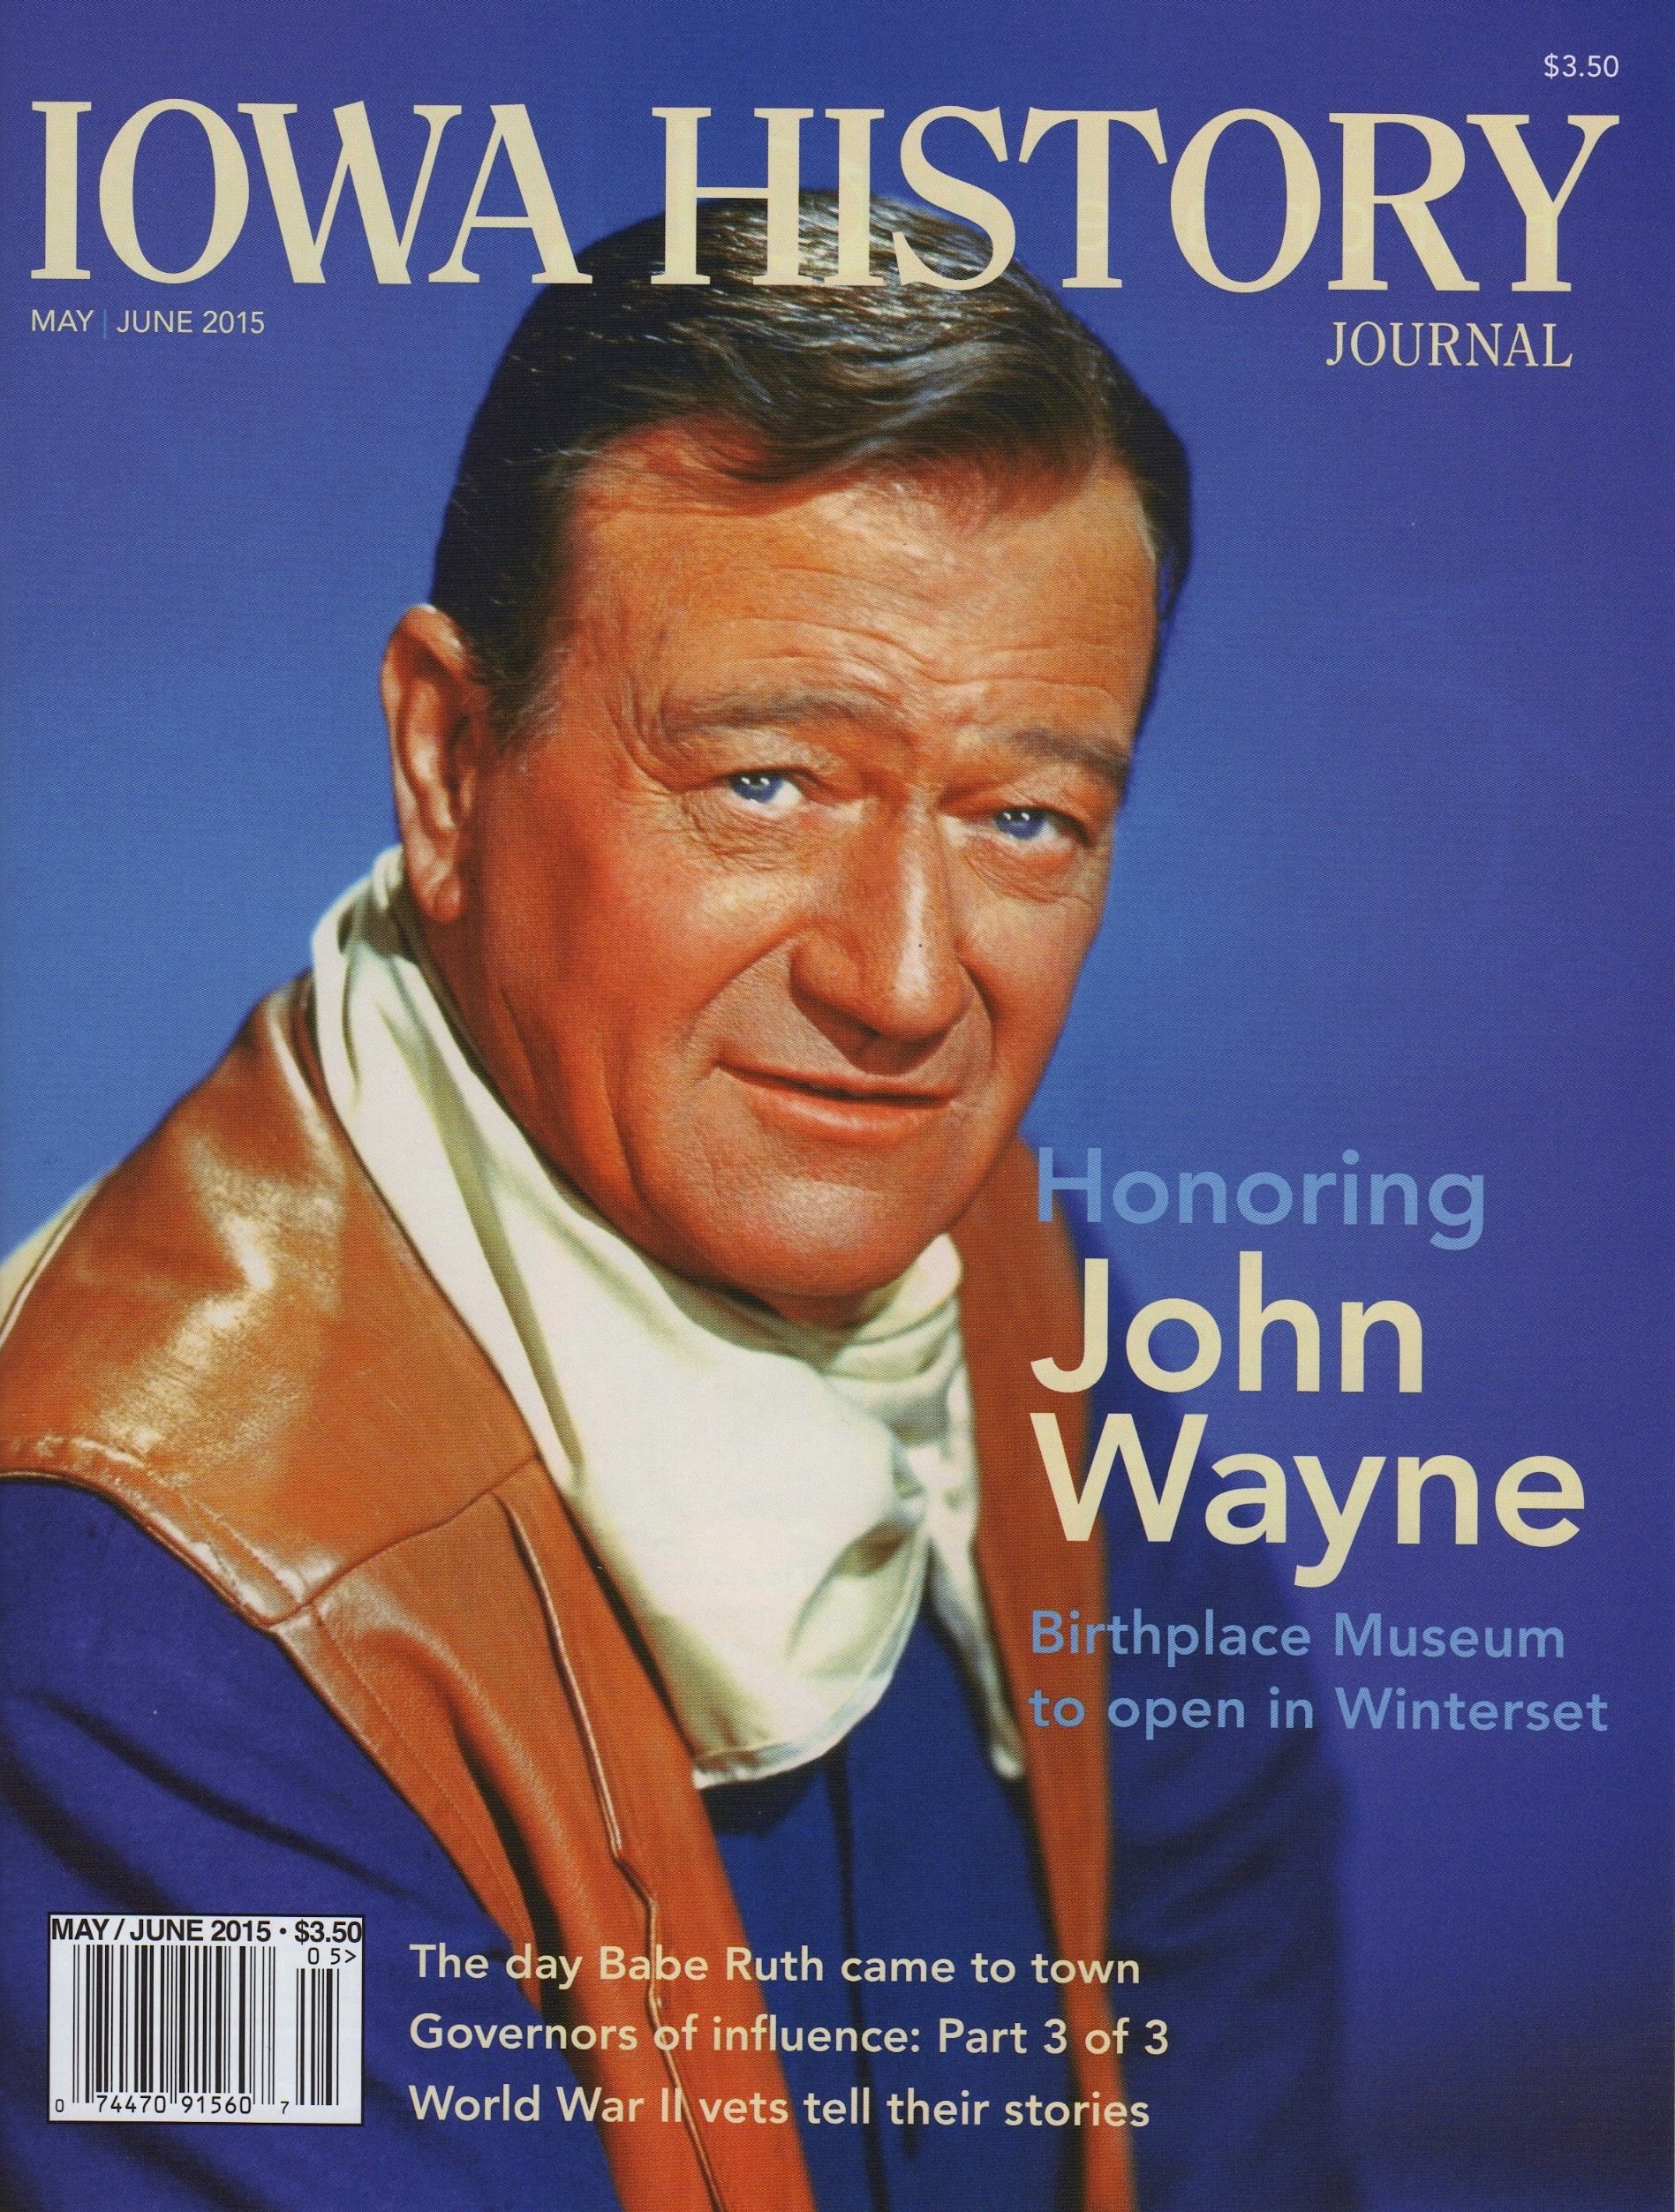 Volume 7, Issue 3  - Honoring John Wayne